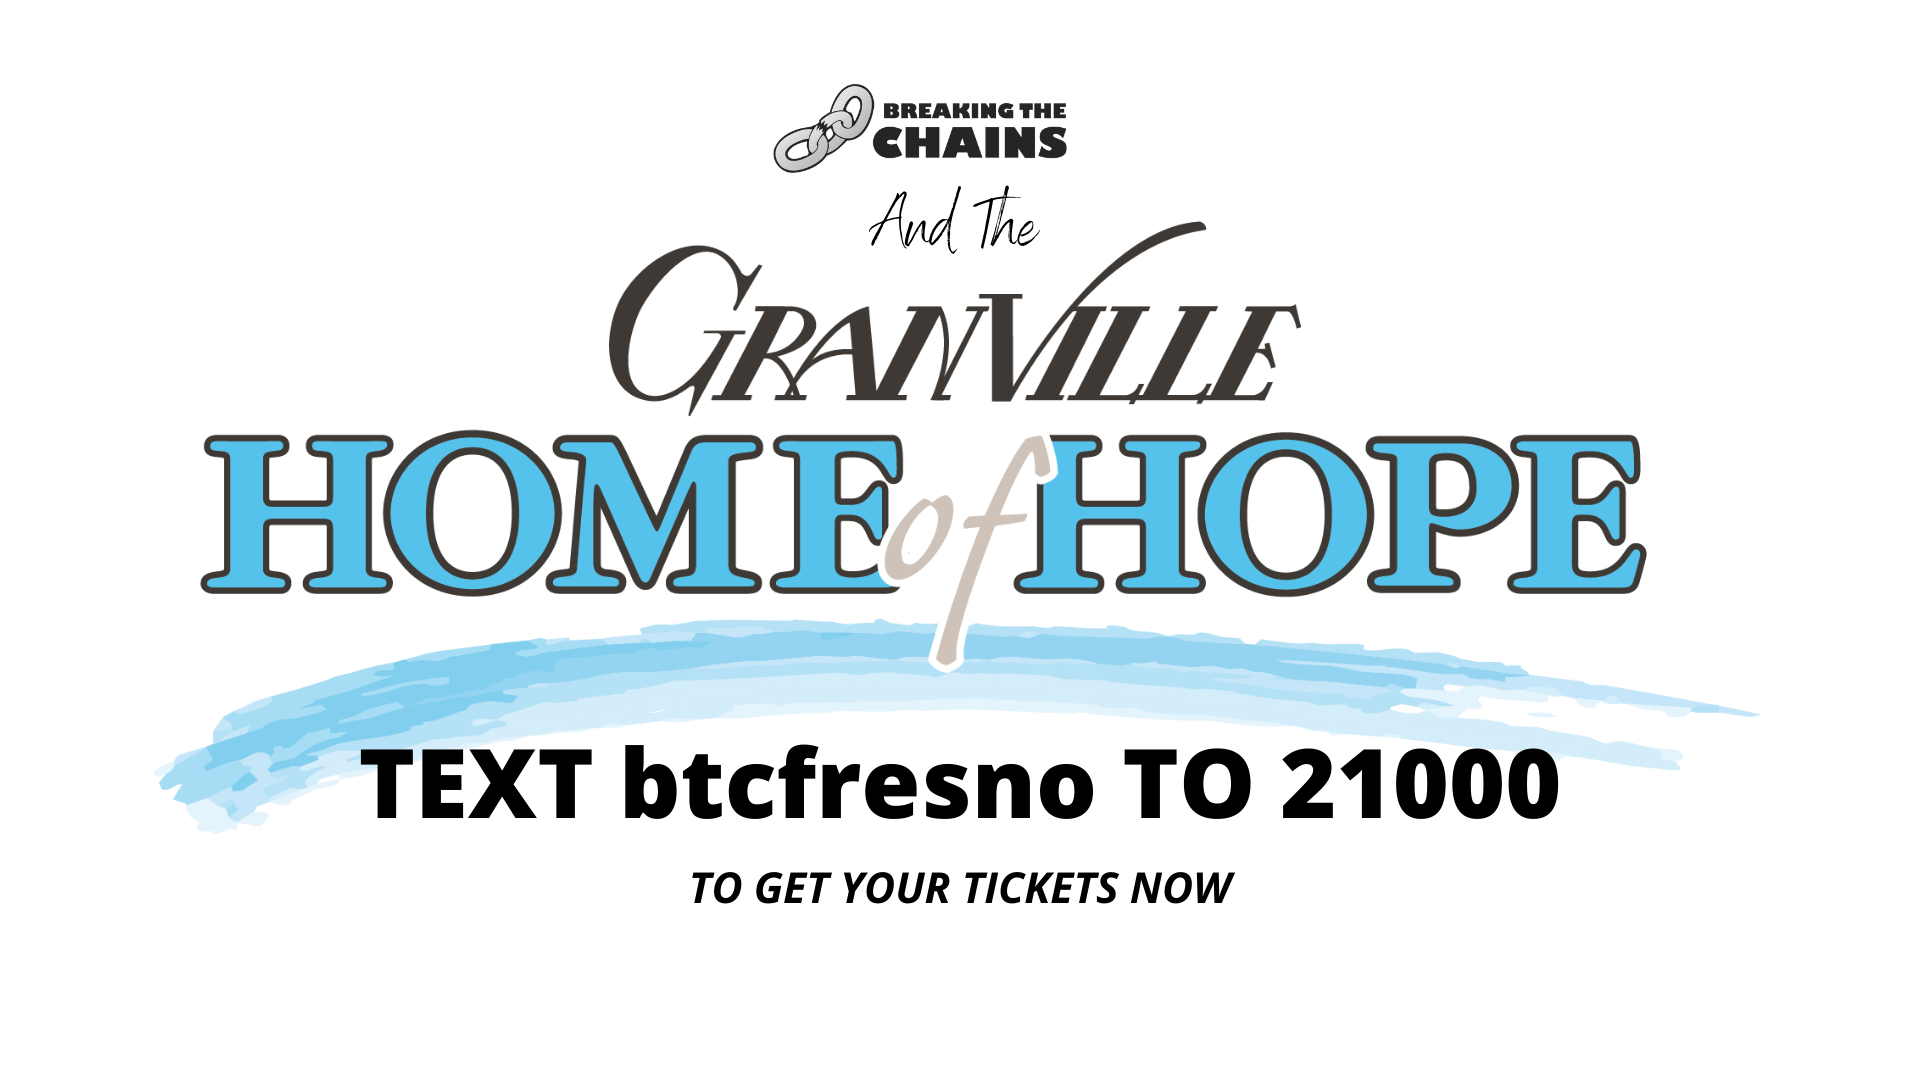 Granville Home of Hope